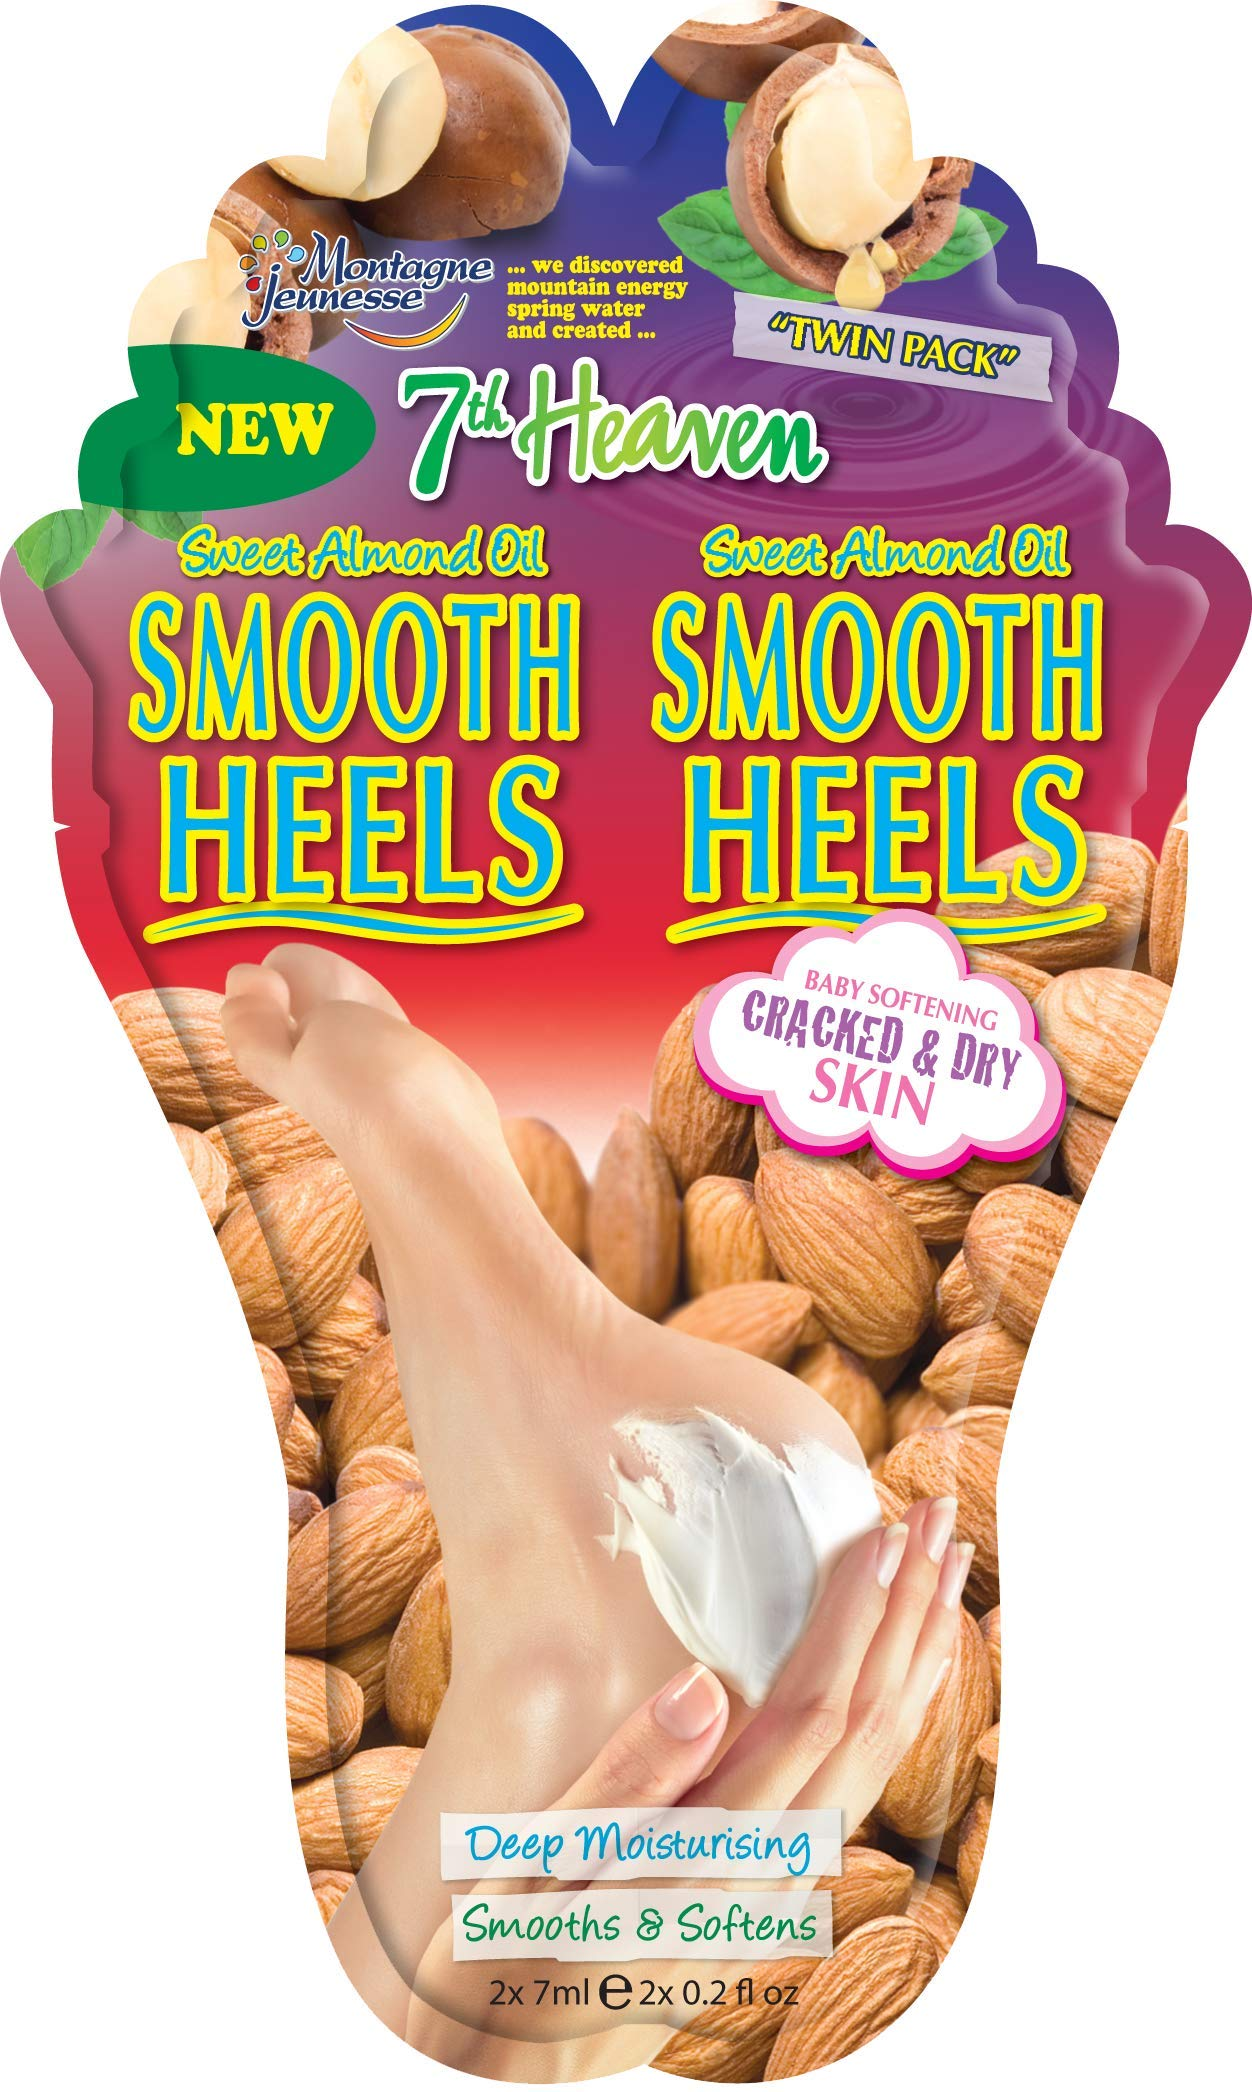 7th Heaven 'Smooth Heels' Nourishing Foot Balm with Sweet Almond Oil and Shea Butter to Deeply Moisturise, Smooth and Soften Cracked and Dry Feet